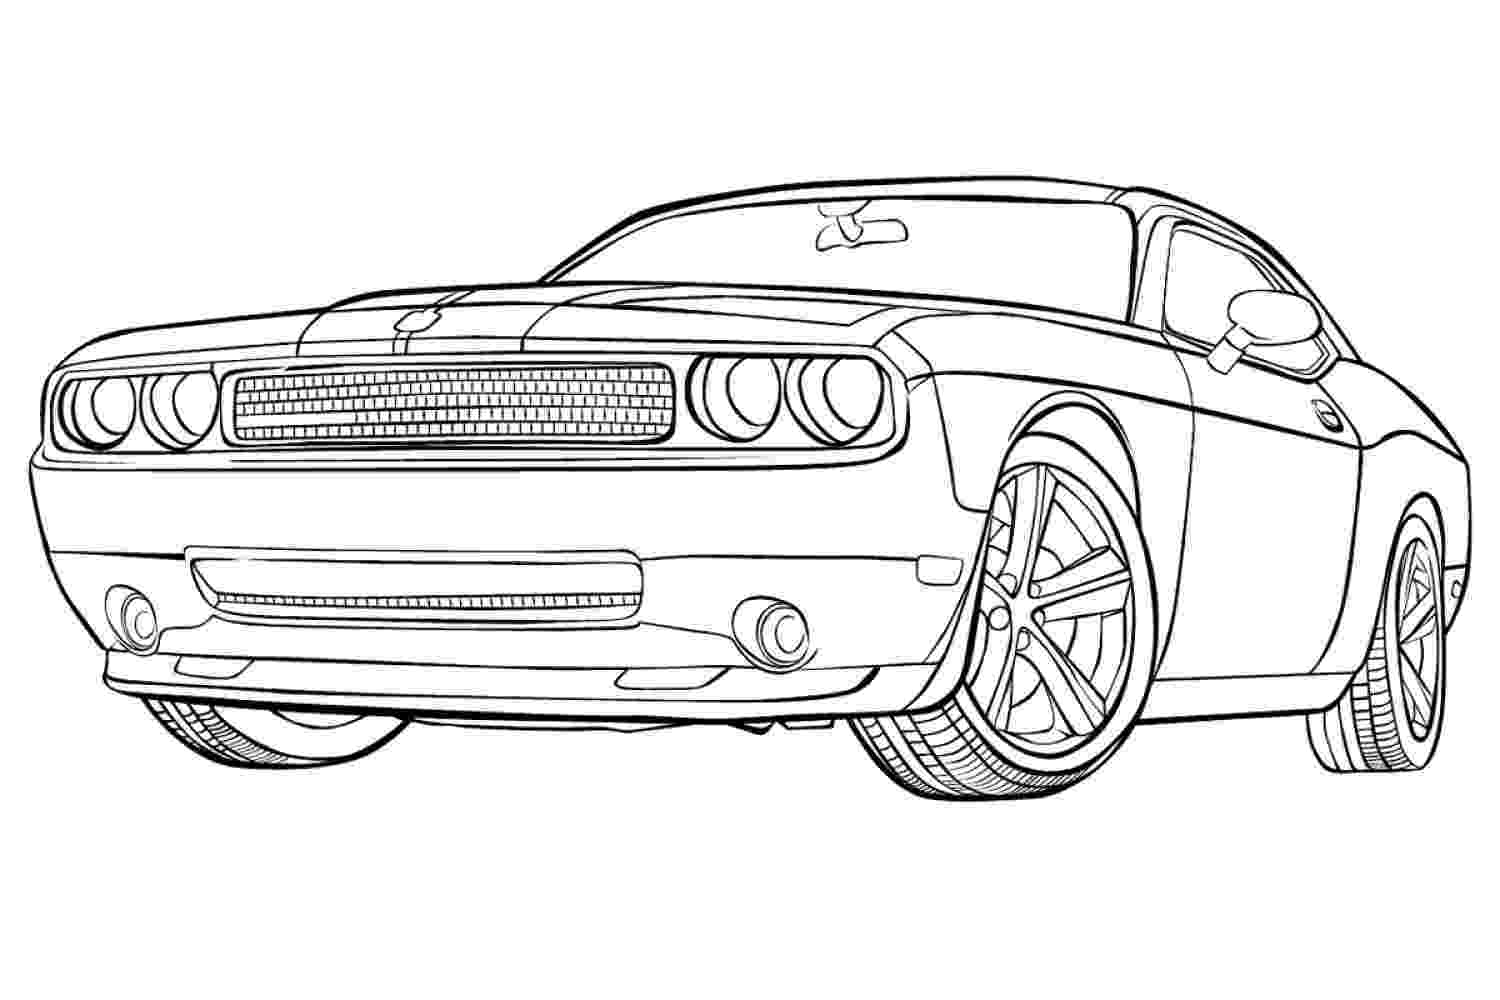 muscle cars coloring pages muscle car coloring pages to download and print for free coloring muscle pages cars